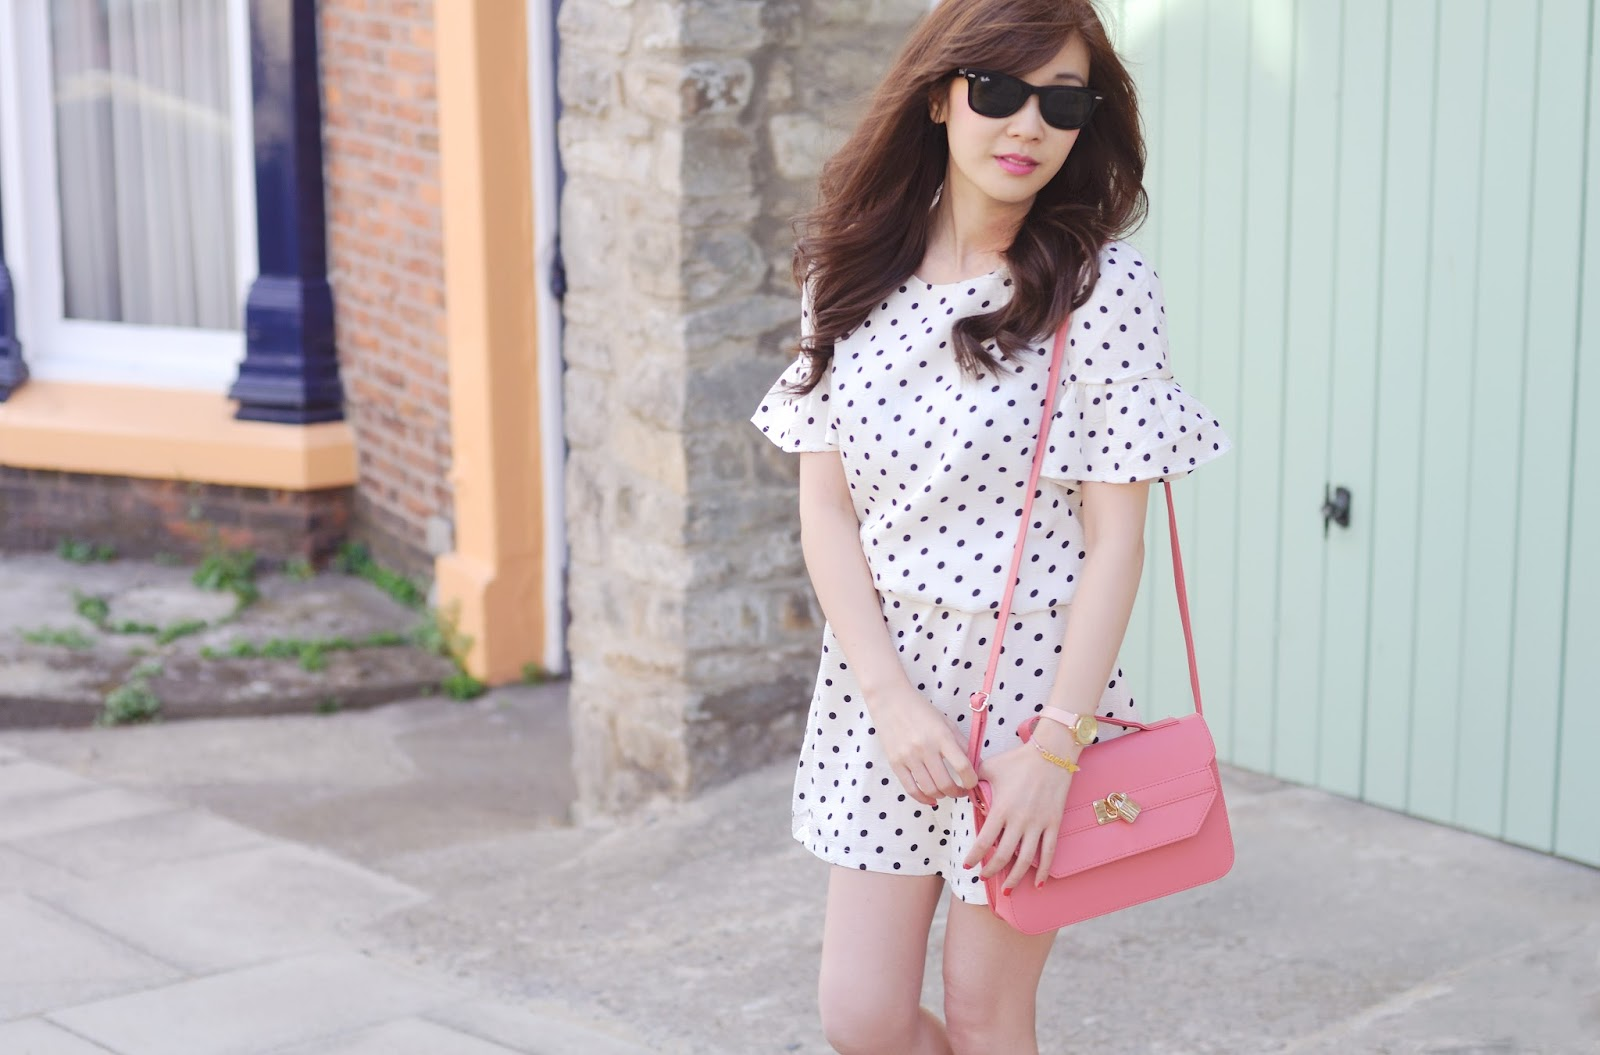 uk fashion blogger, how to style a polka dot dress